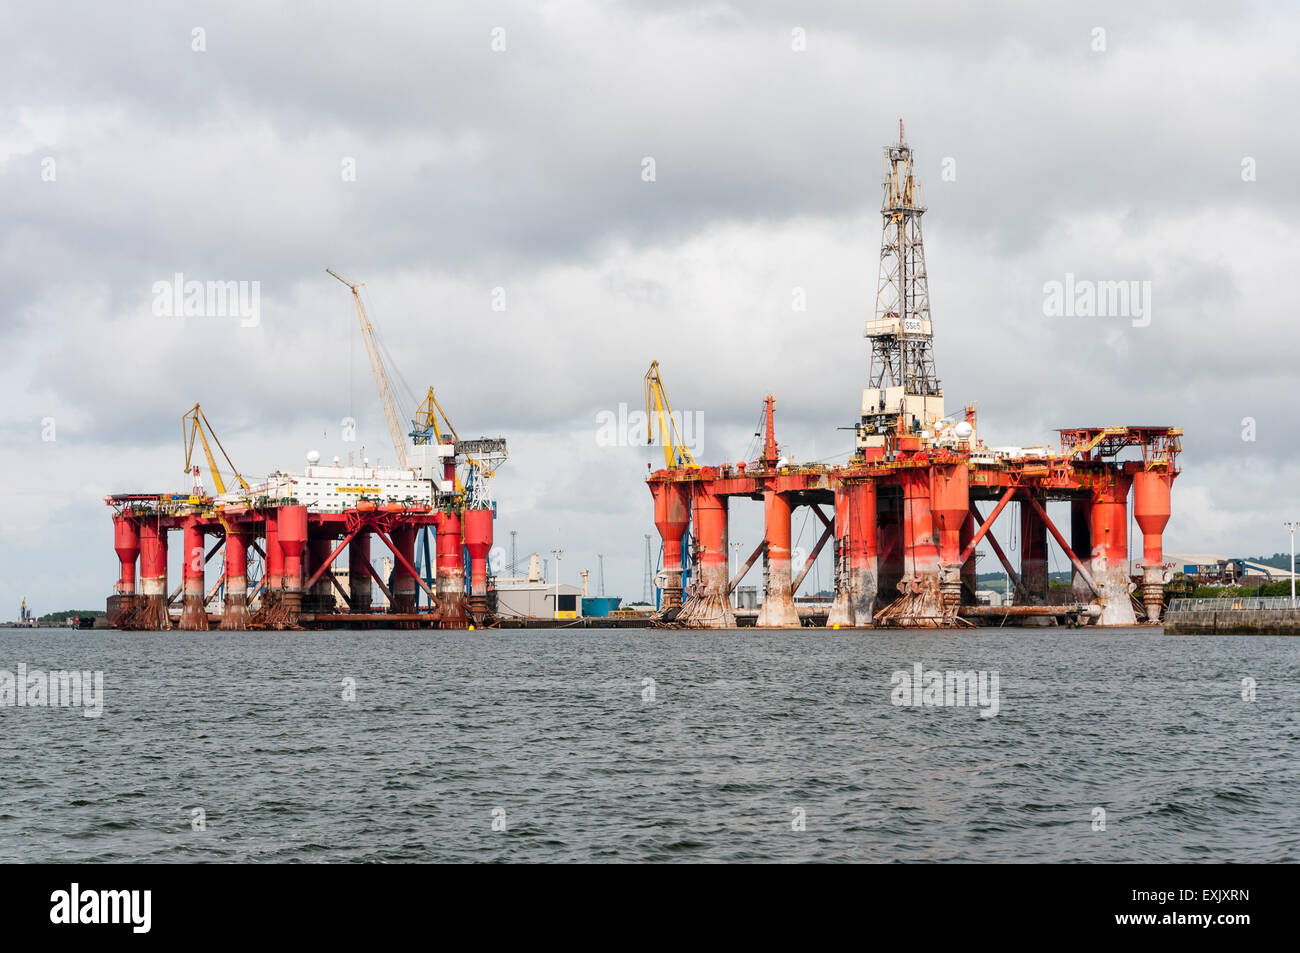 Bryford Dolphin drilling platform and Borgholm Dolphin accommodation platform in Belfast for repairs. - Stock Image